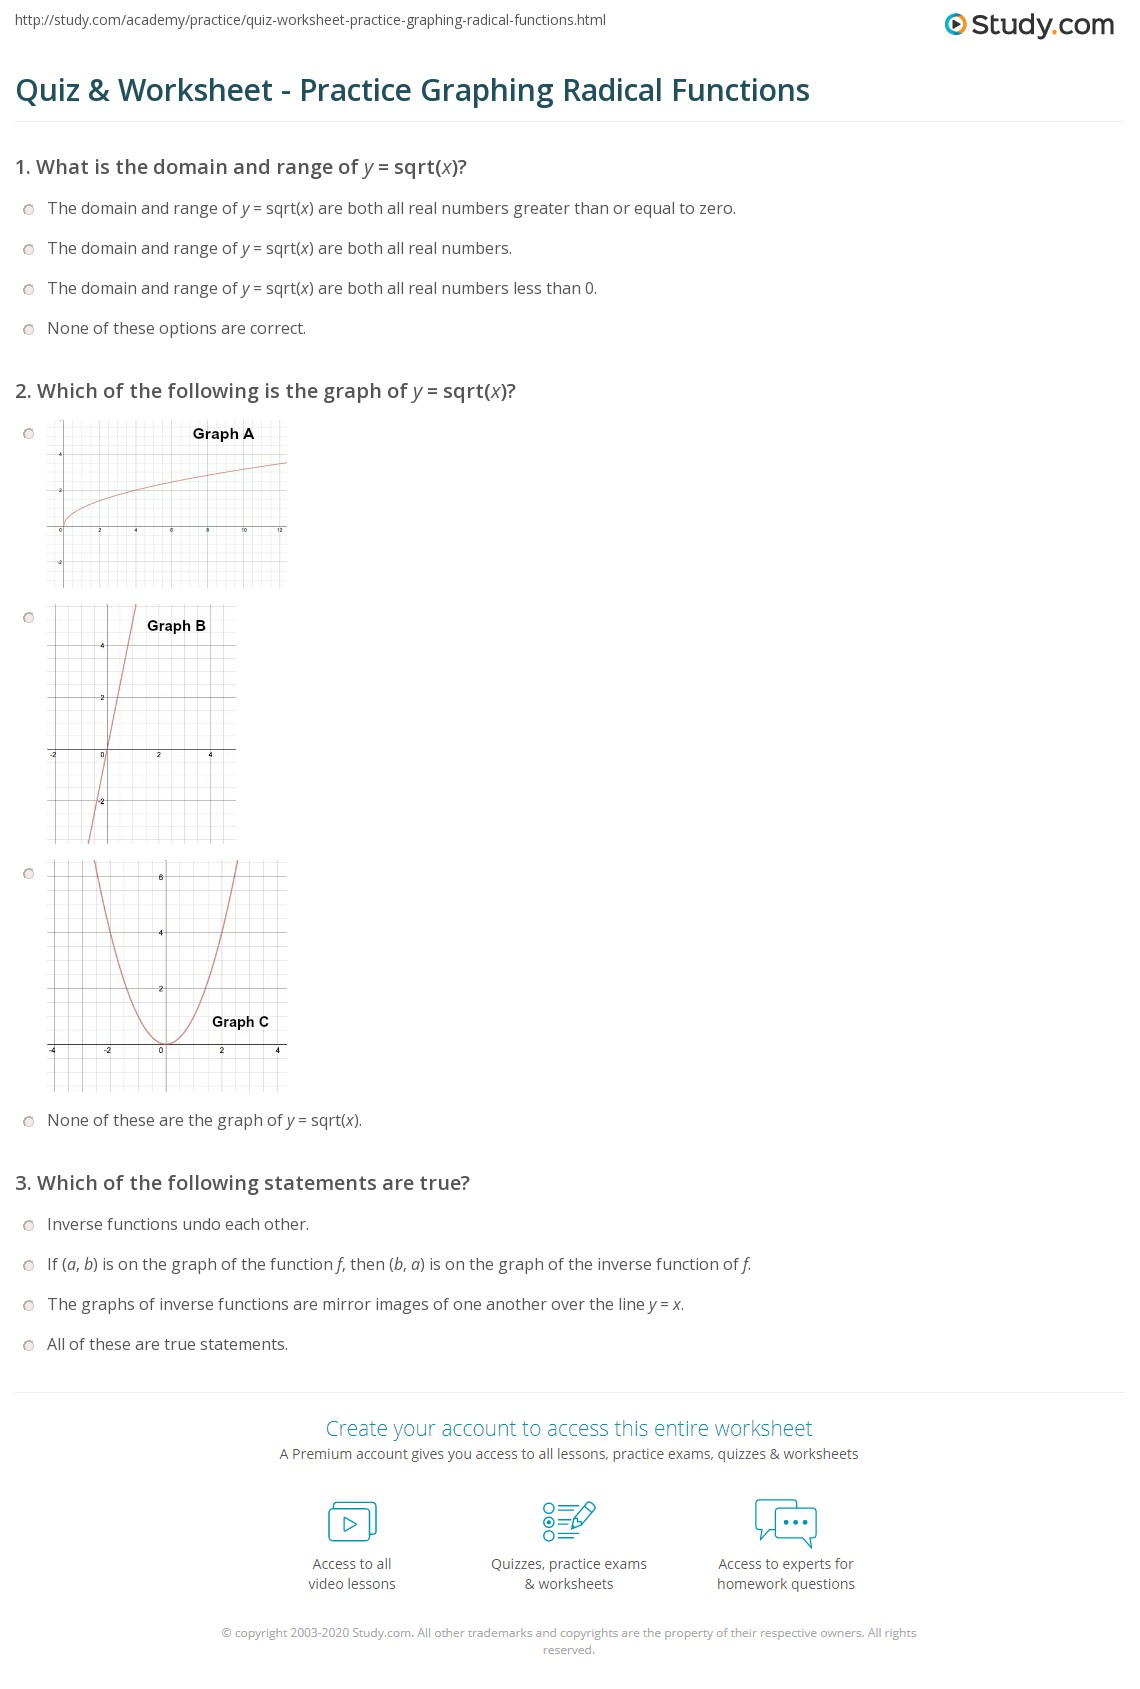 Uncategorized Inverse Function Worksheet quiz worksheet practice graphing radical functions study com print how to graph ysqrtx worksheet